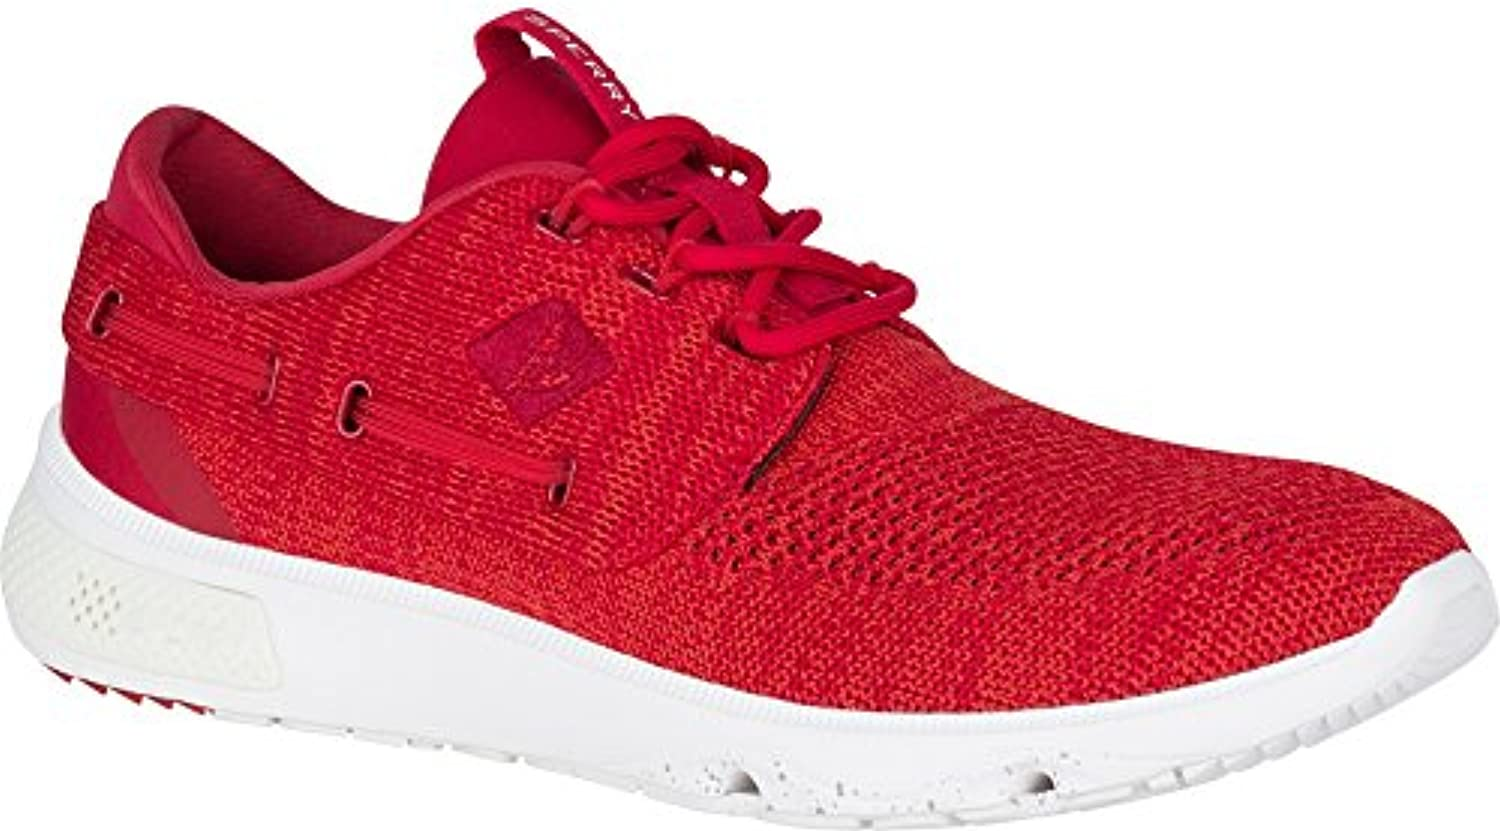 Sperry 7 Seas Knit Boat Shoe (10 M US  Red)